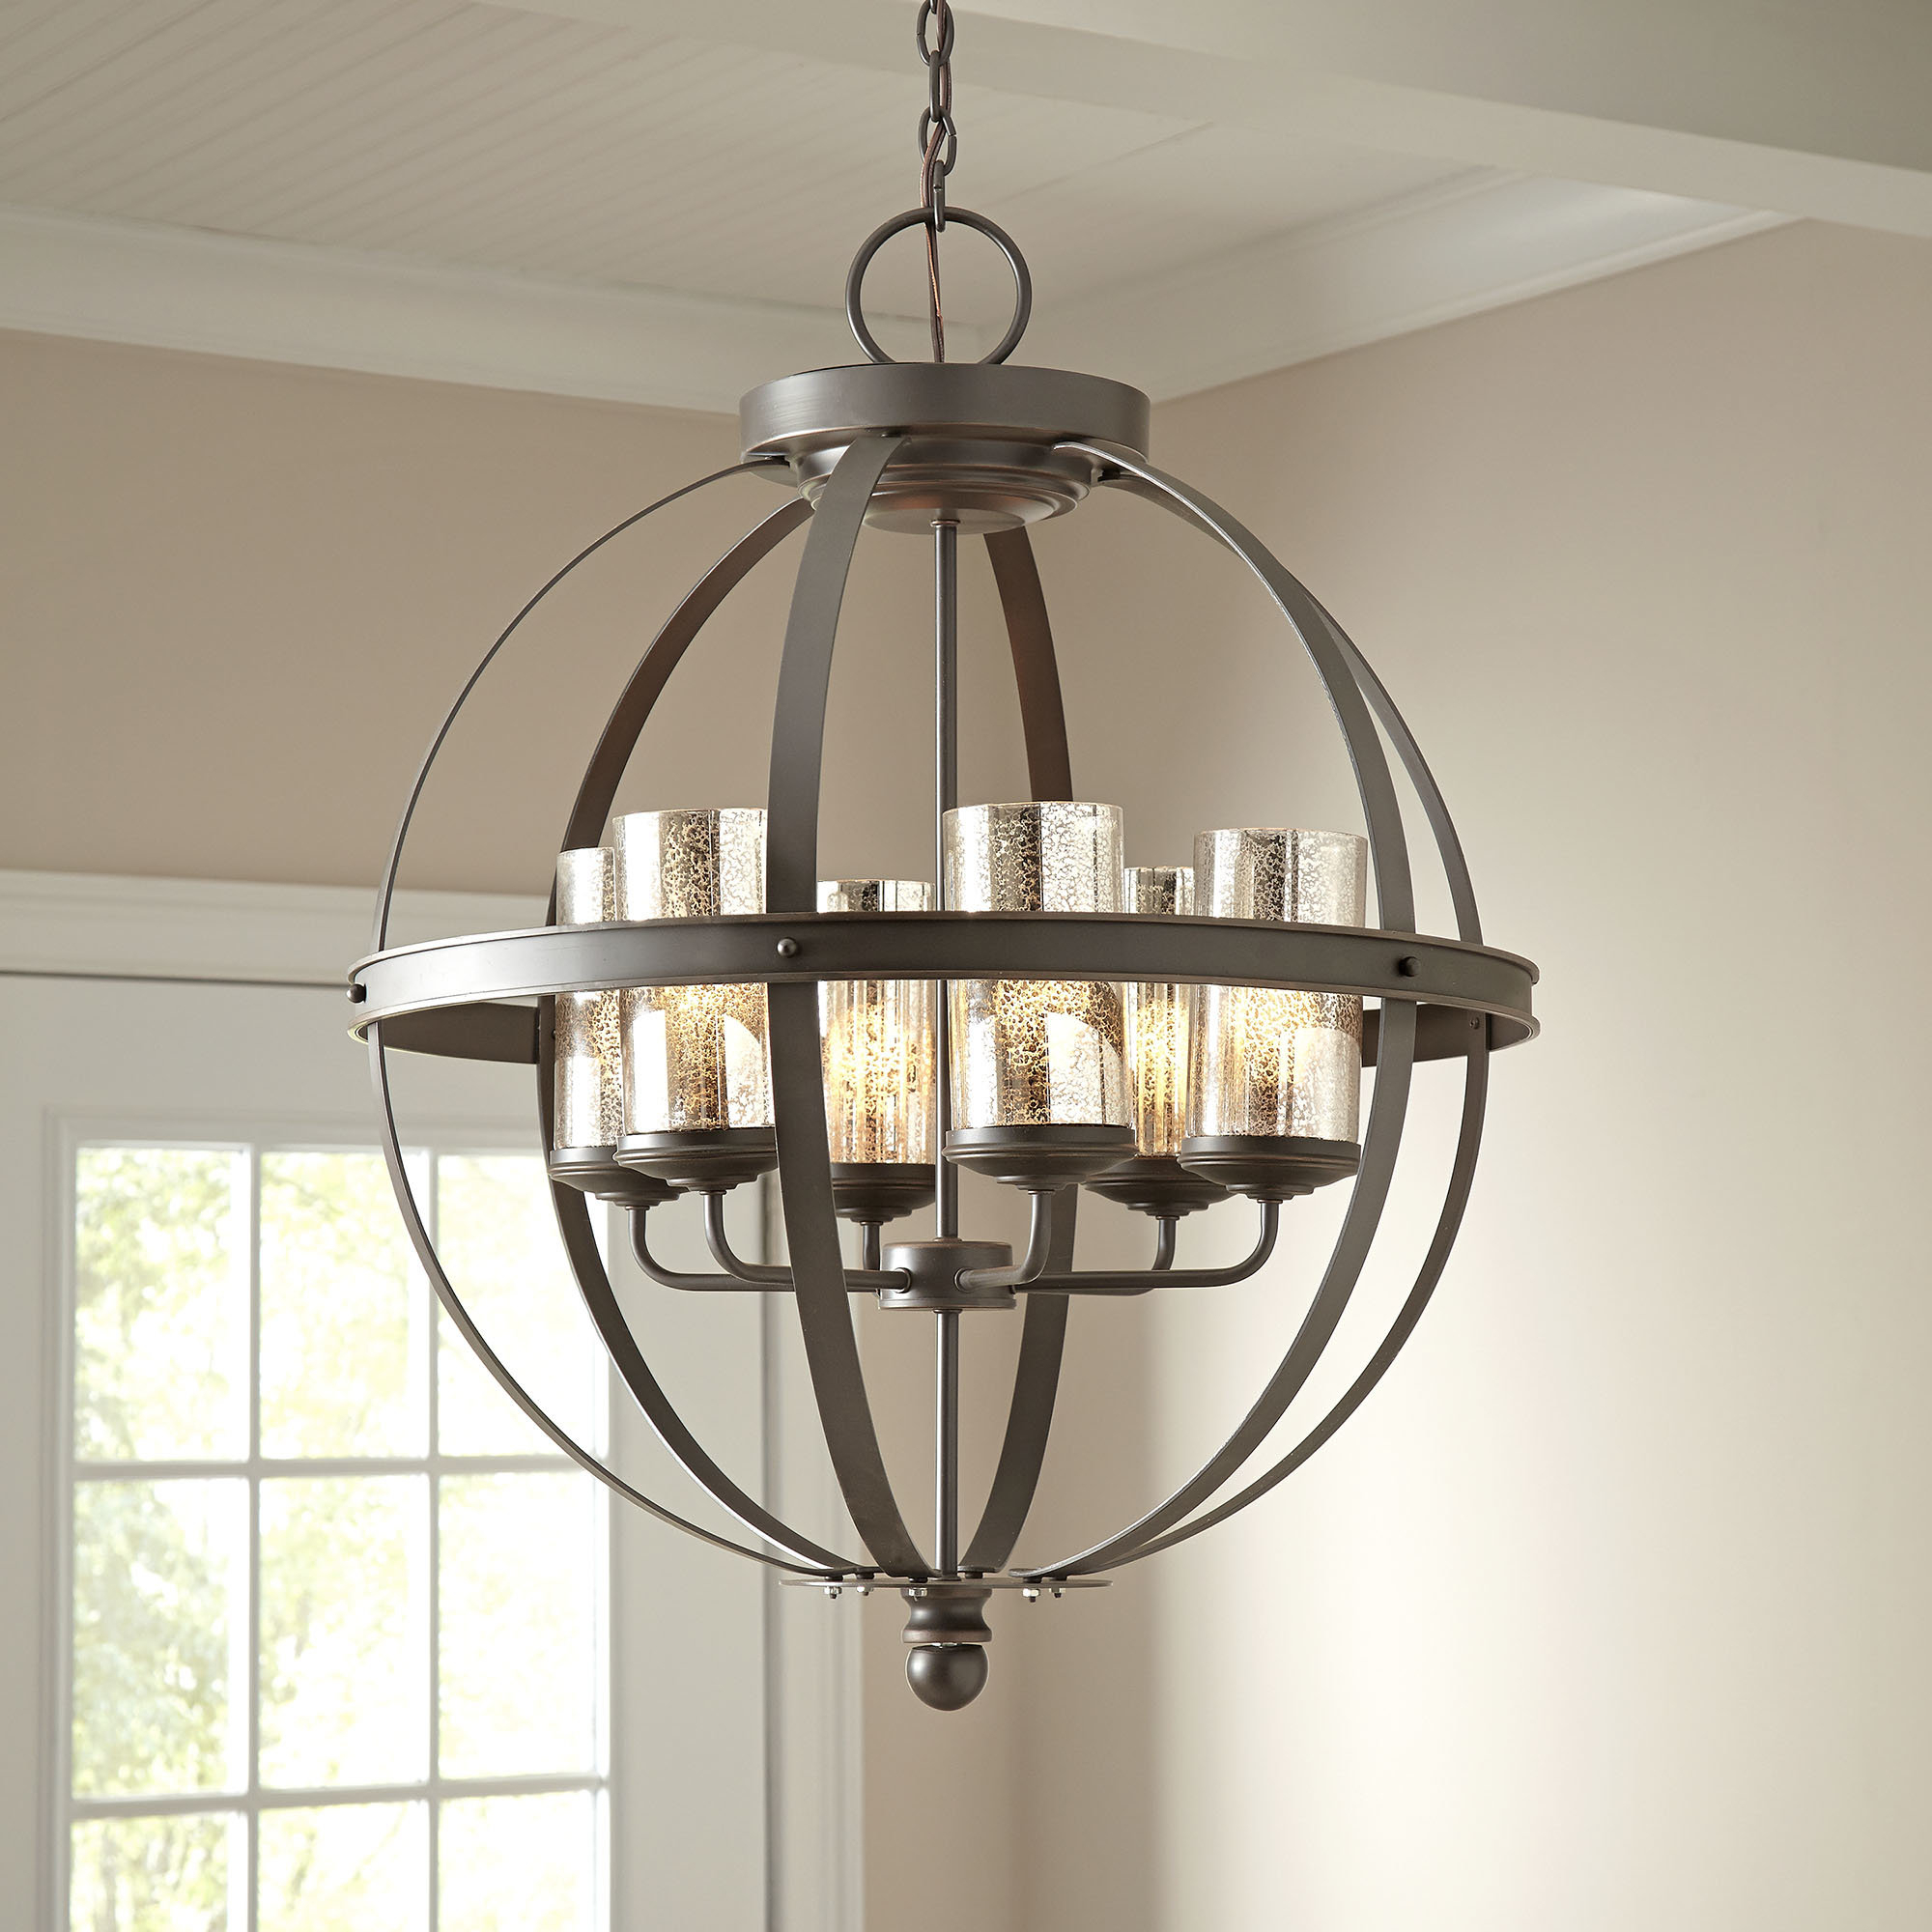 2020 Donna 6 Light Globe Chandelier Within Donna 6 Light Globe Chandeliers (Gallery 1 of 20)